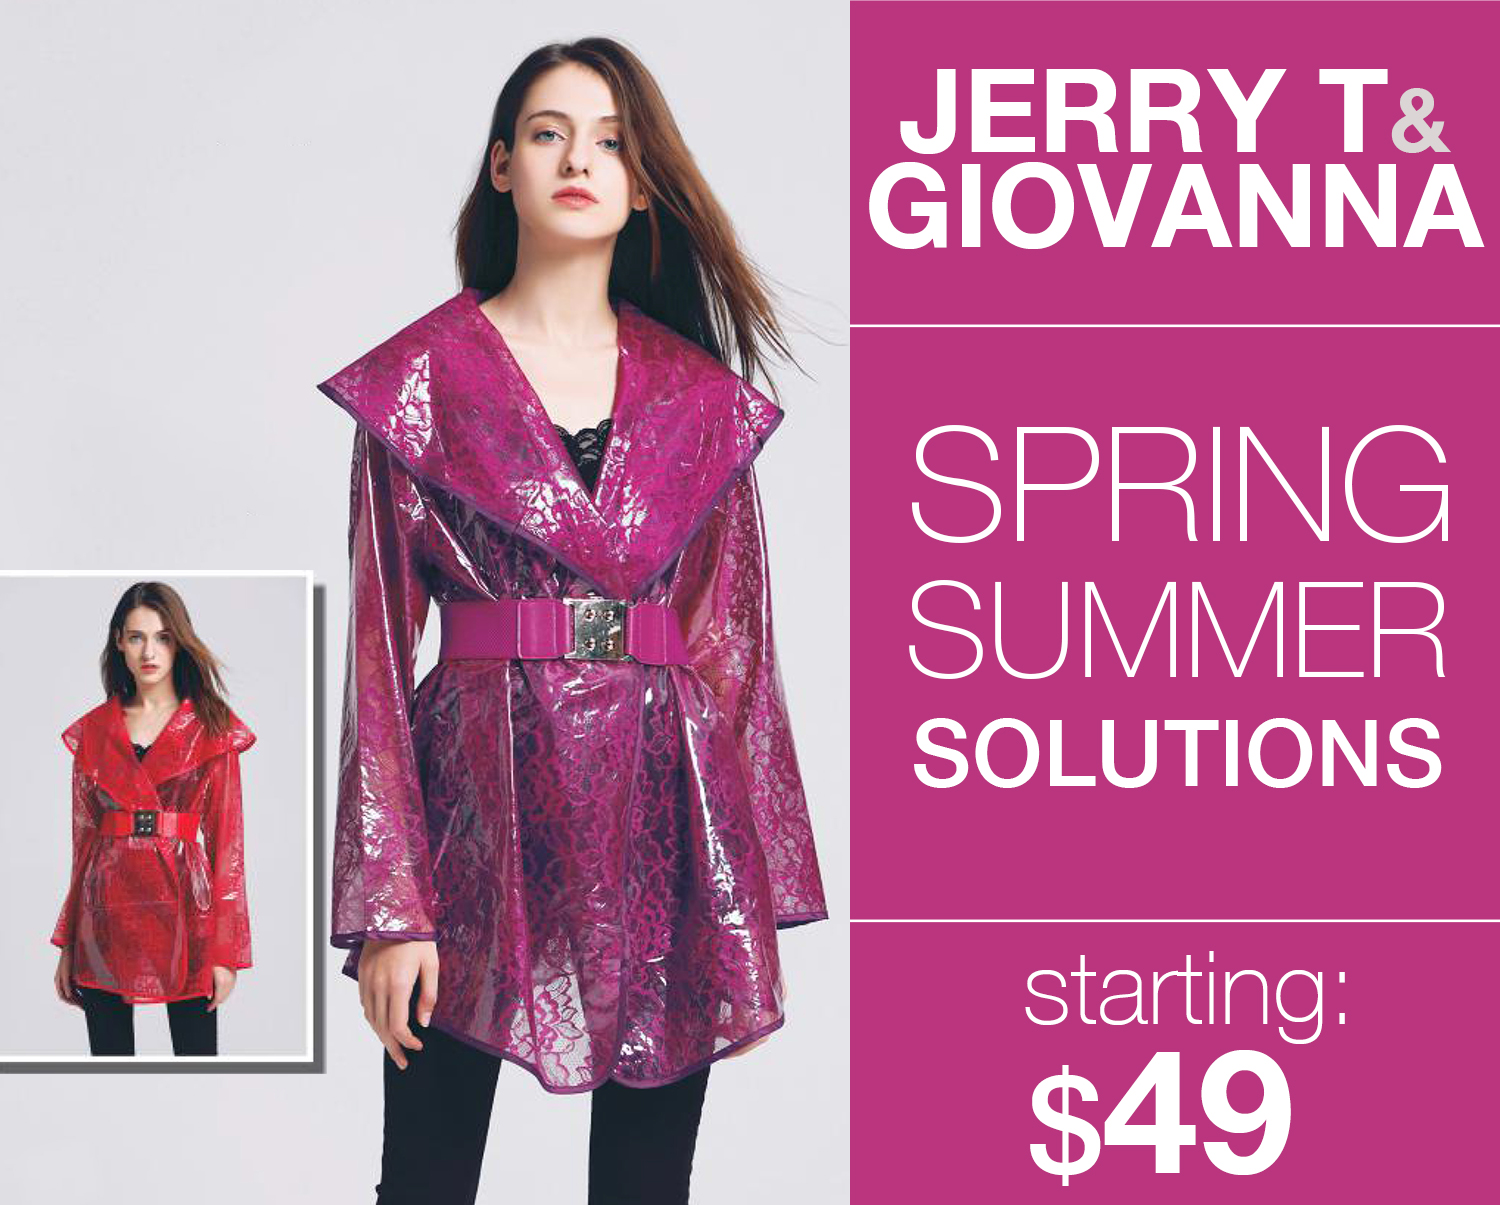 Jerry T With Giovanna High Style Fashions Spring And Summer 2018